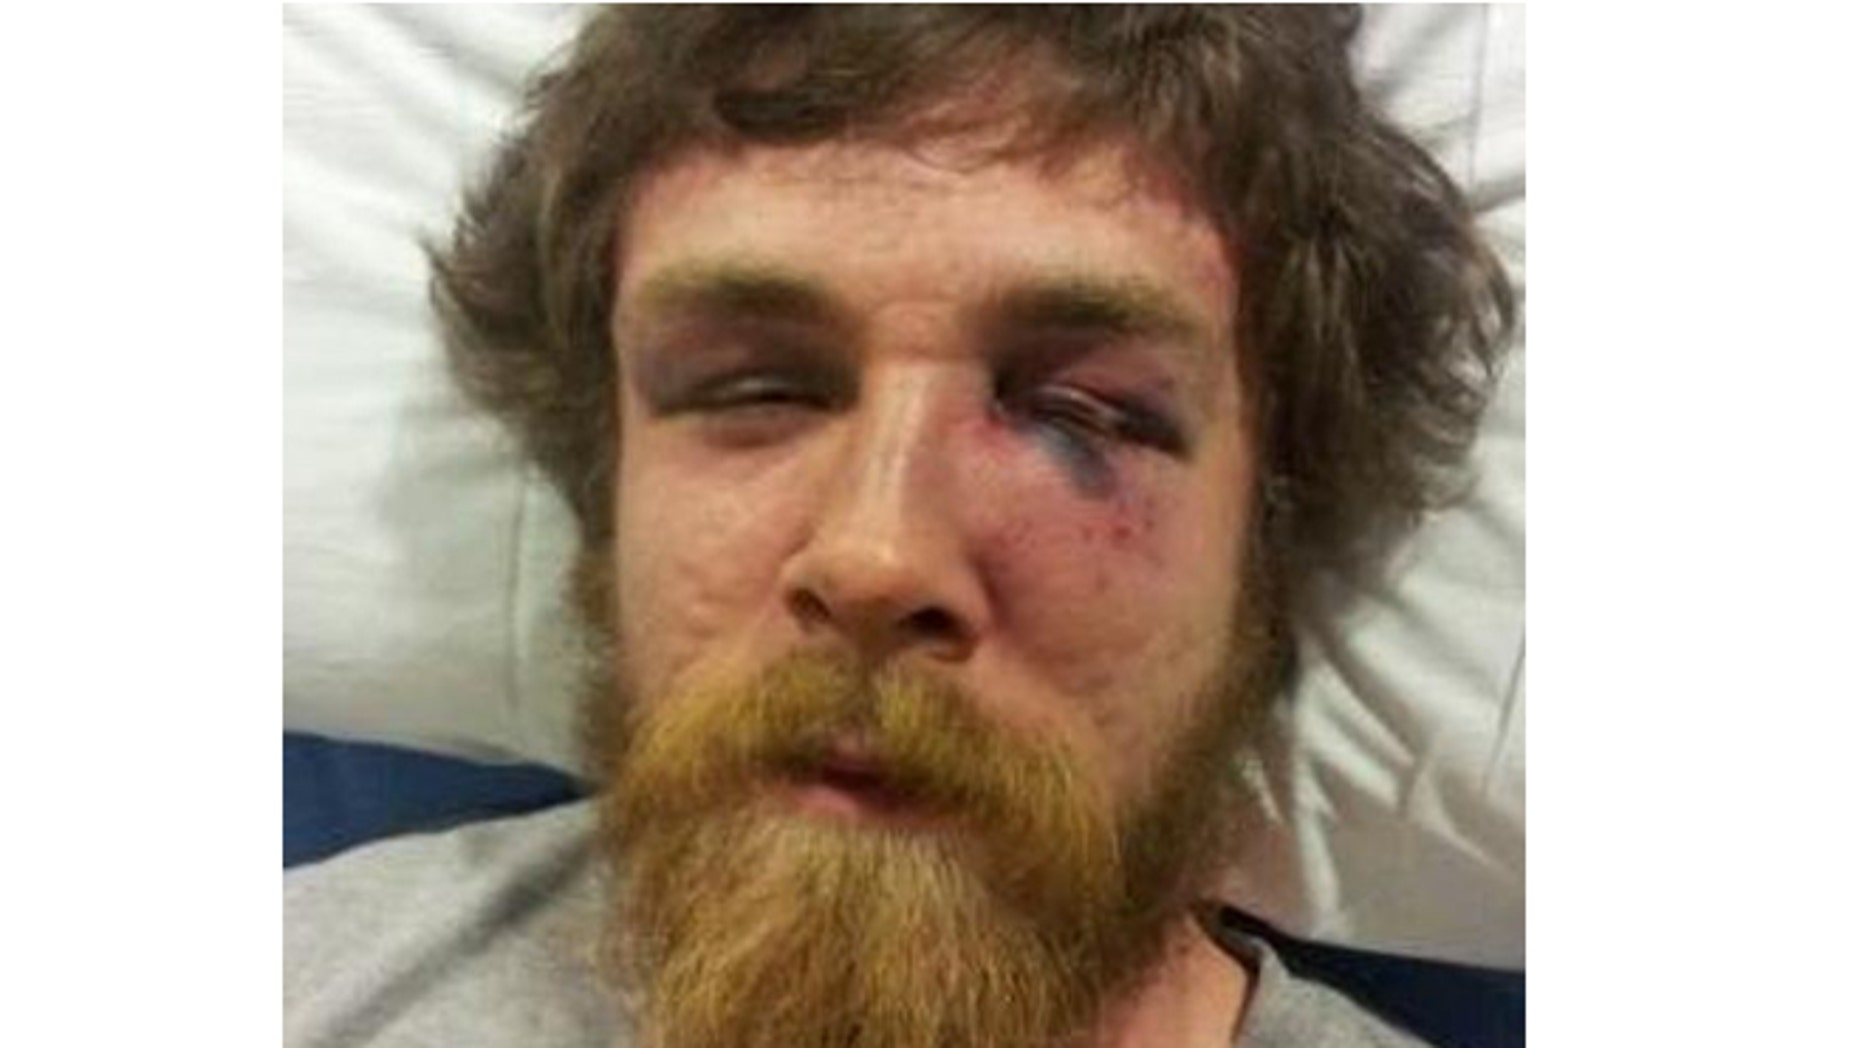 Sean Kedzie in his hospital bed shortly after the beating incident in Whitewater, Wisconsin.